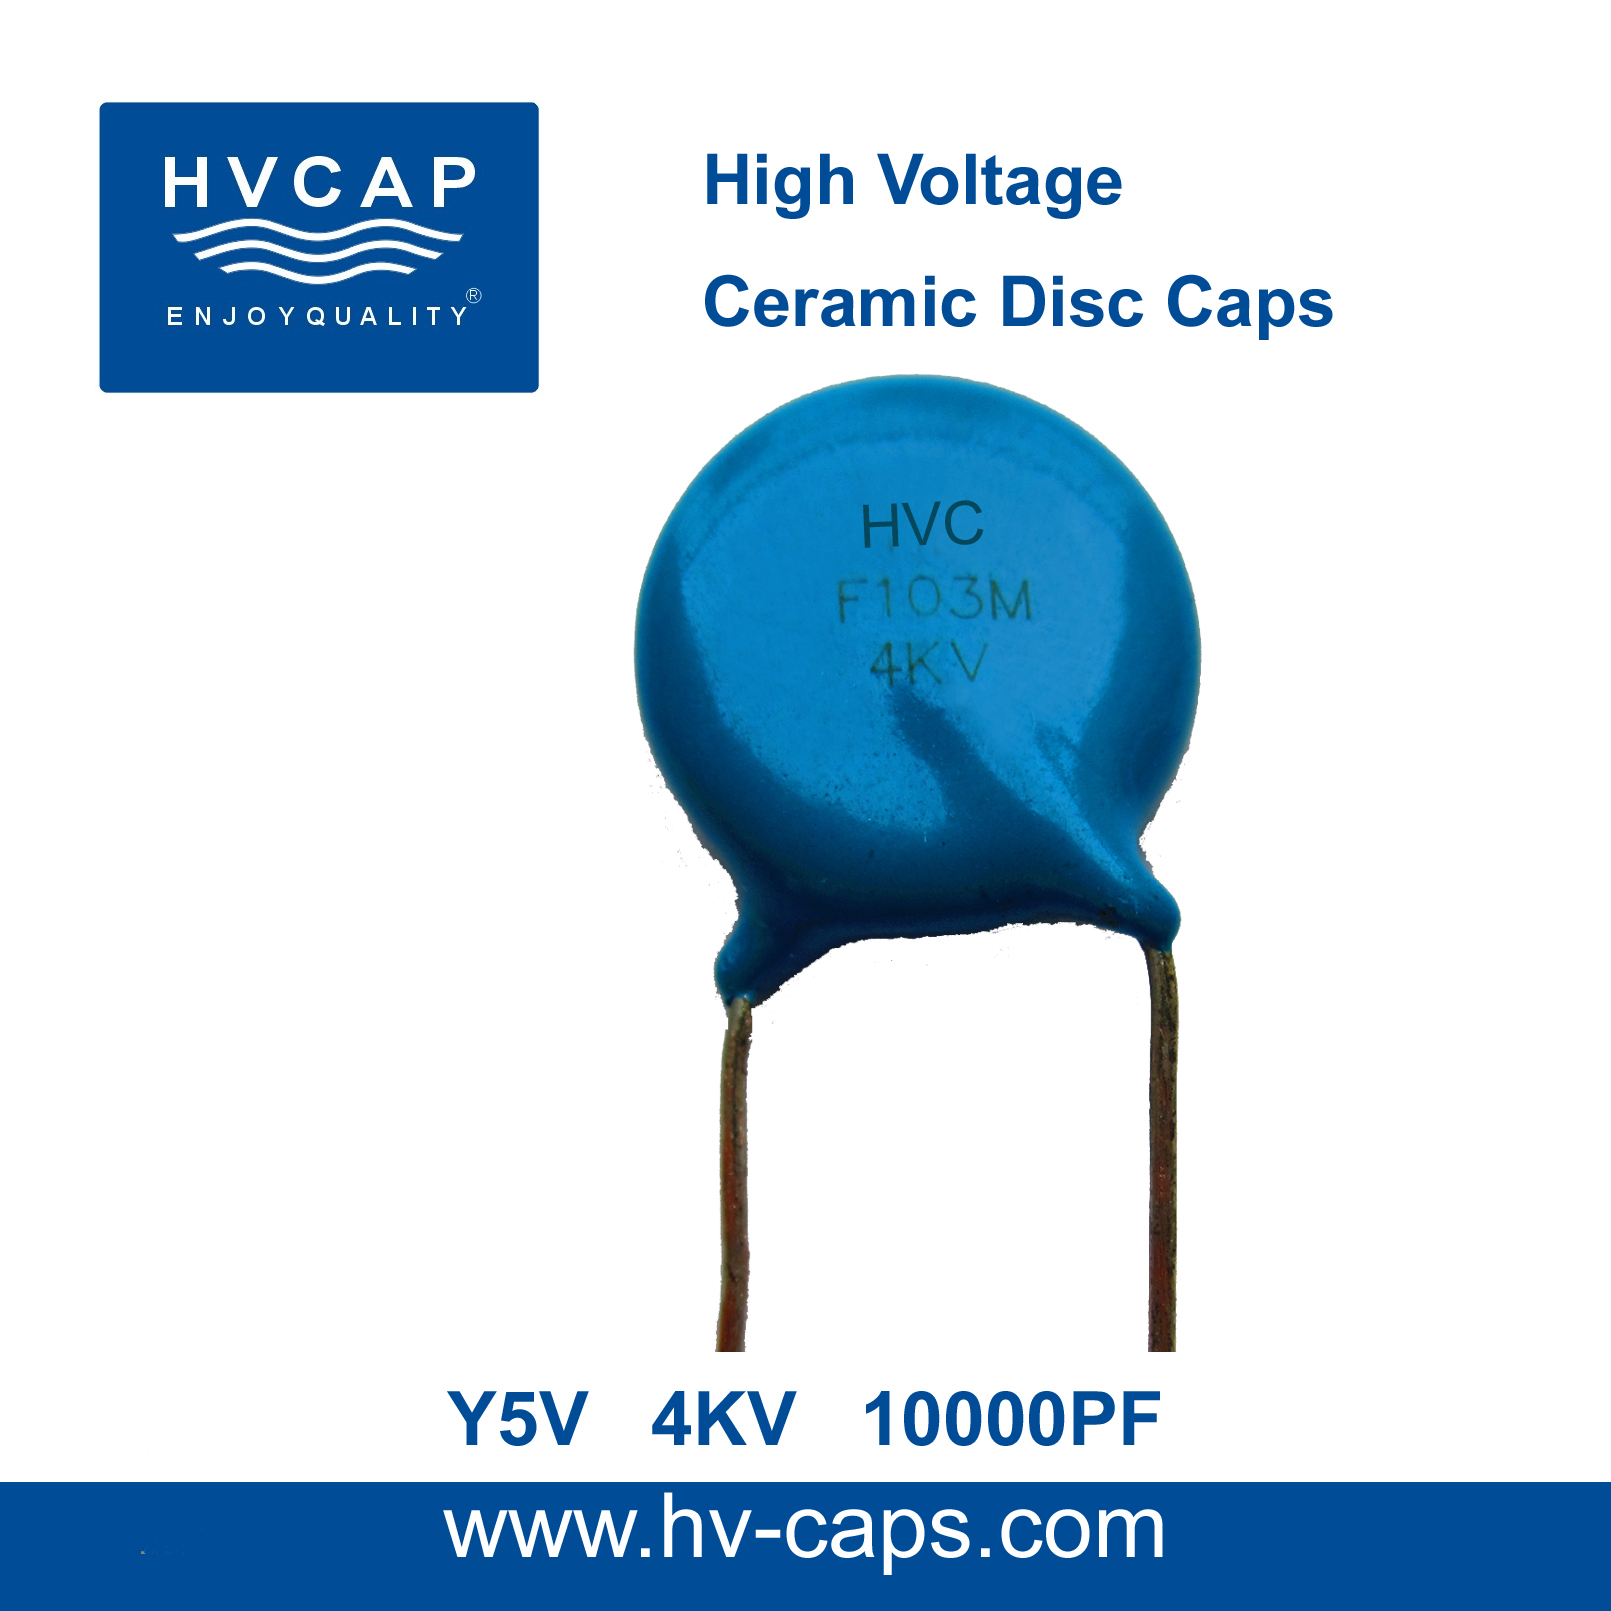 High Voltage Ceramic Doorknob Capacitor 20kv Ac 3300pf